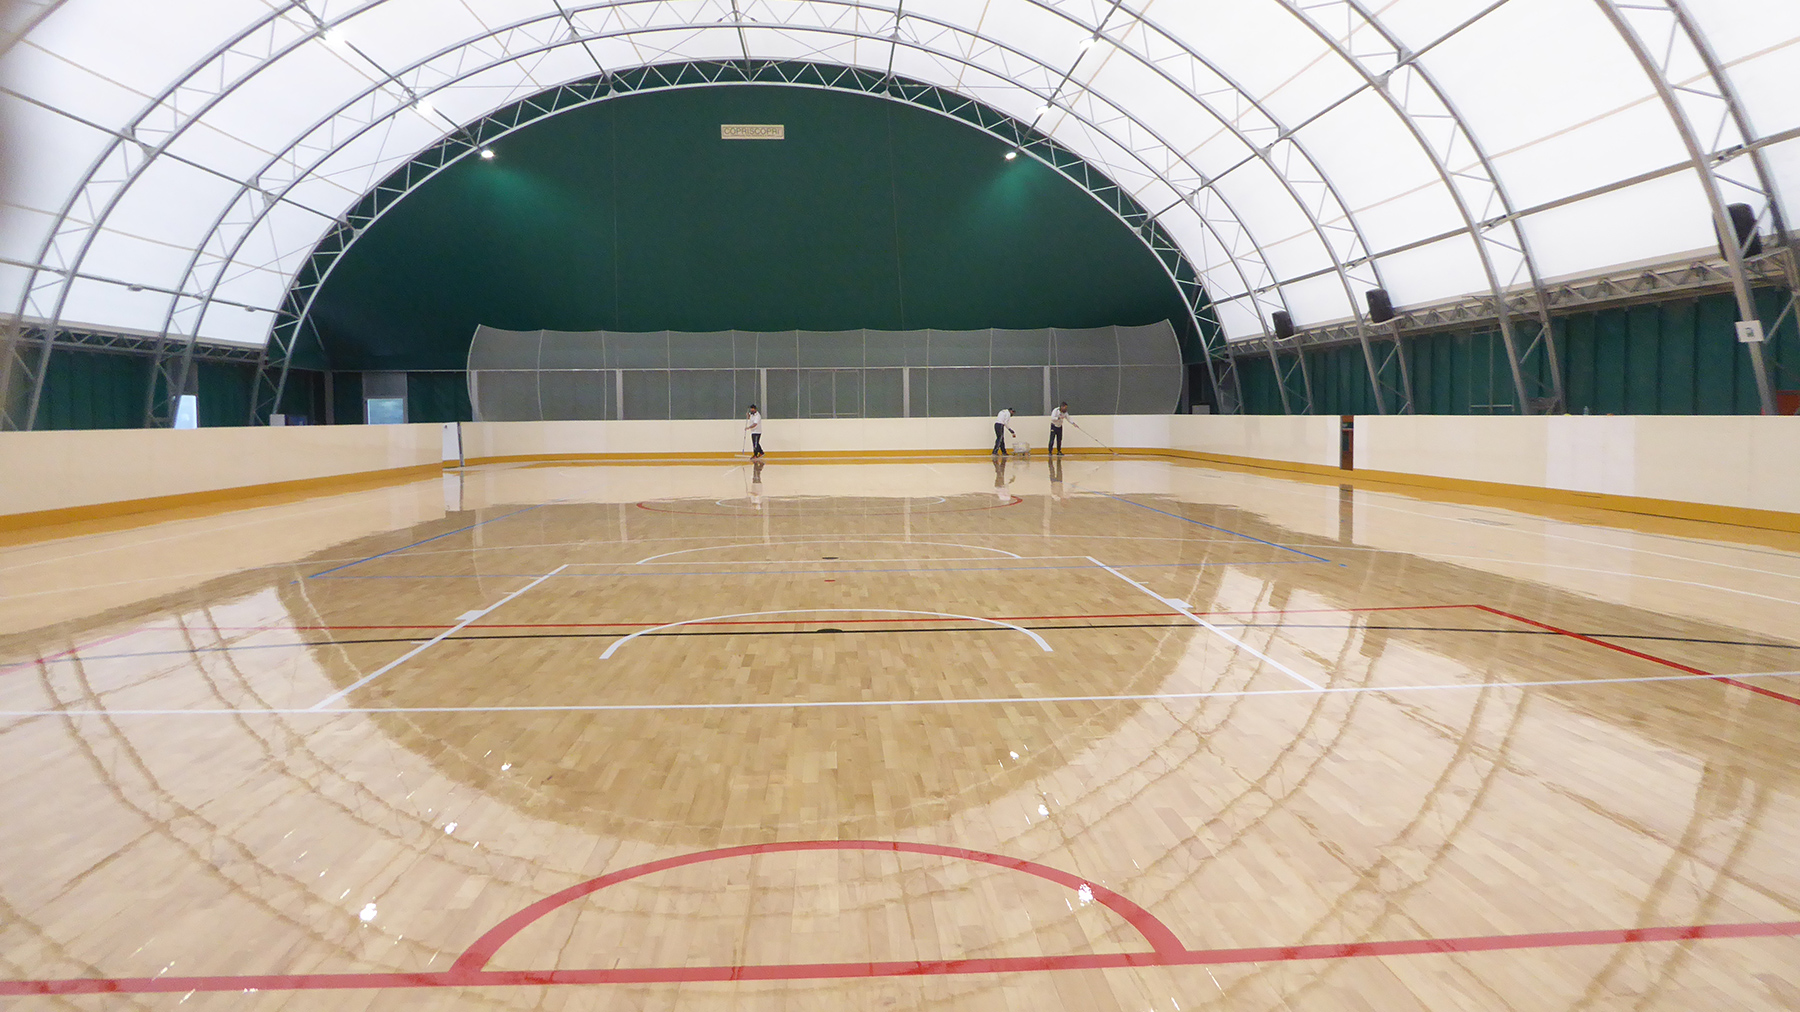 The sports flooring completed